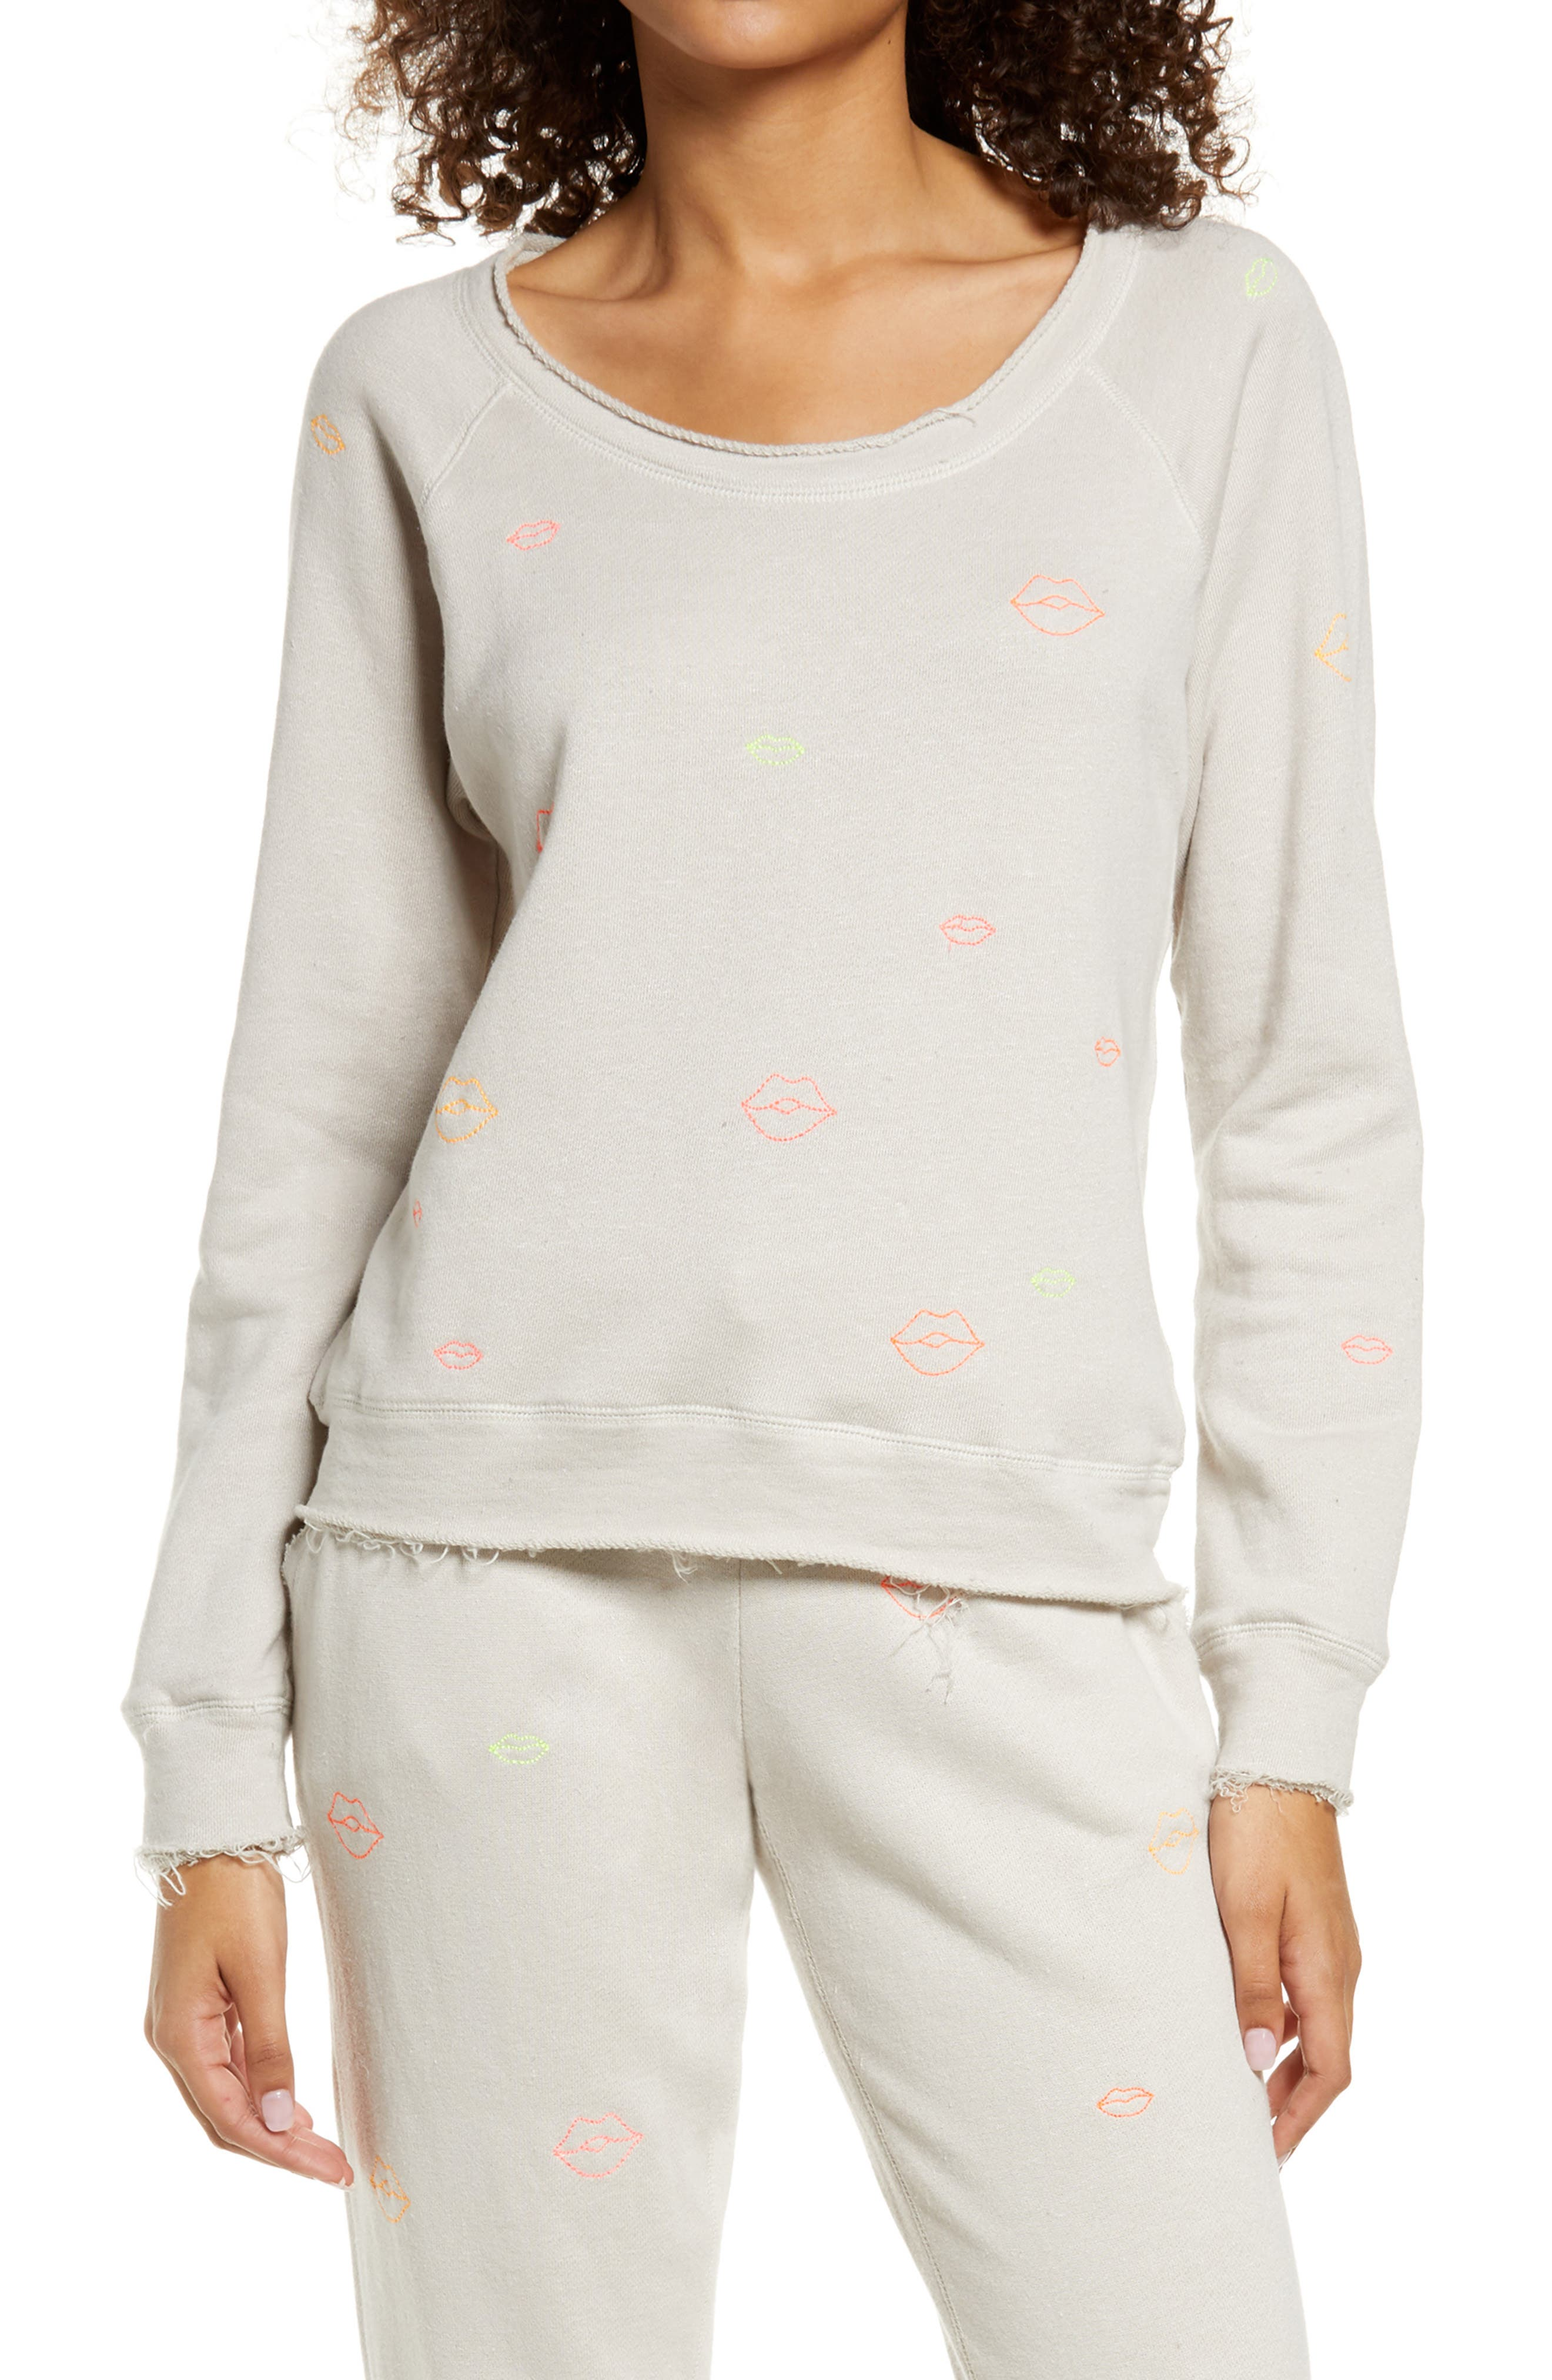 Women's Neon Lips Embroidered Cotton & Linen Pullover